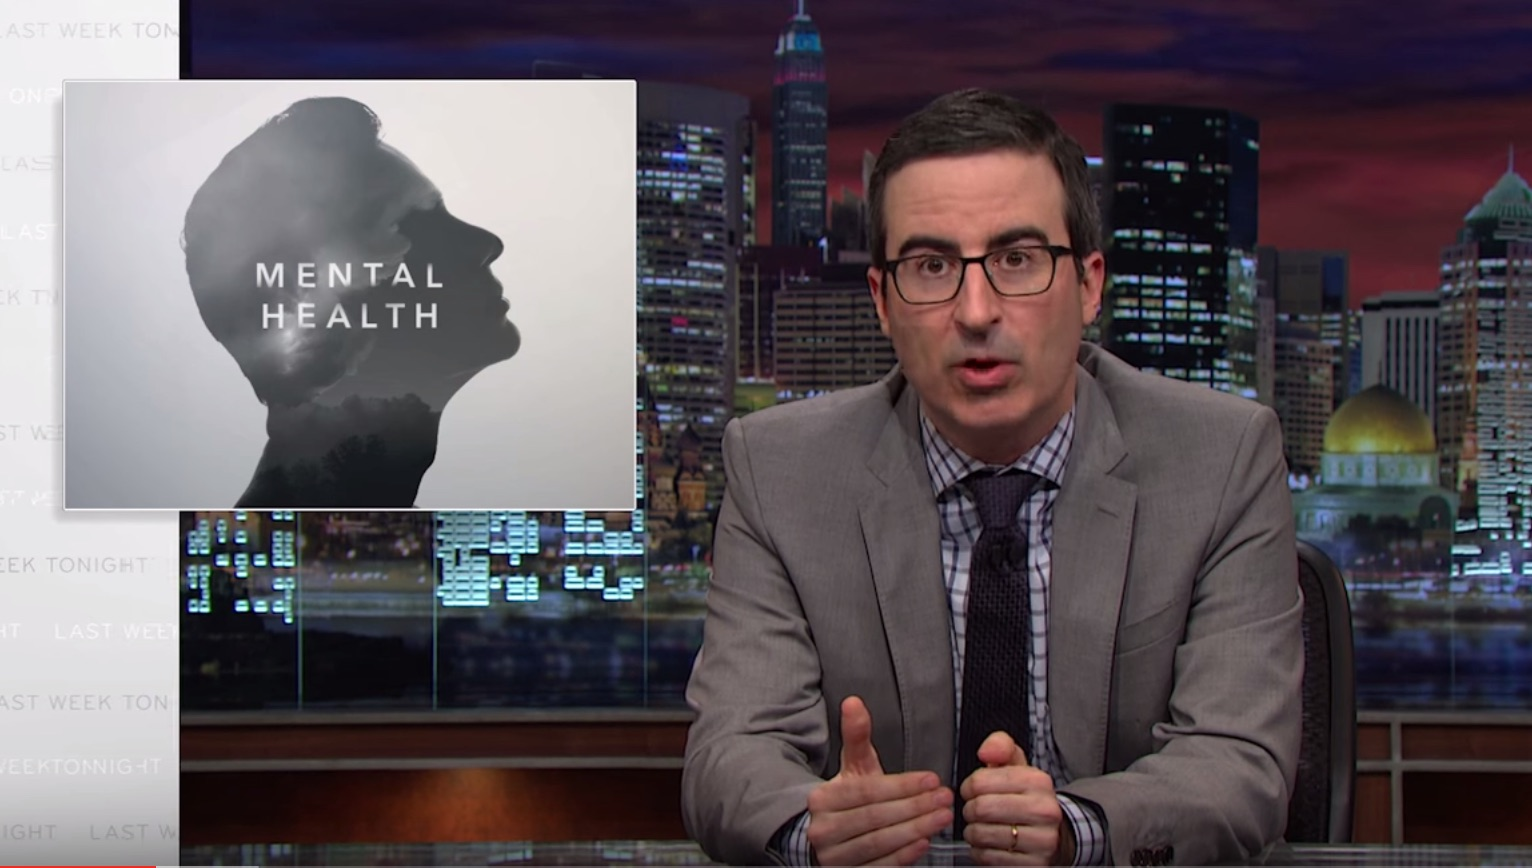 Everyone needs to watch John Oliver's takedown of the mental health stigma